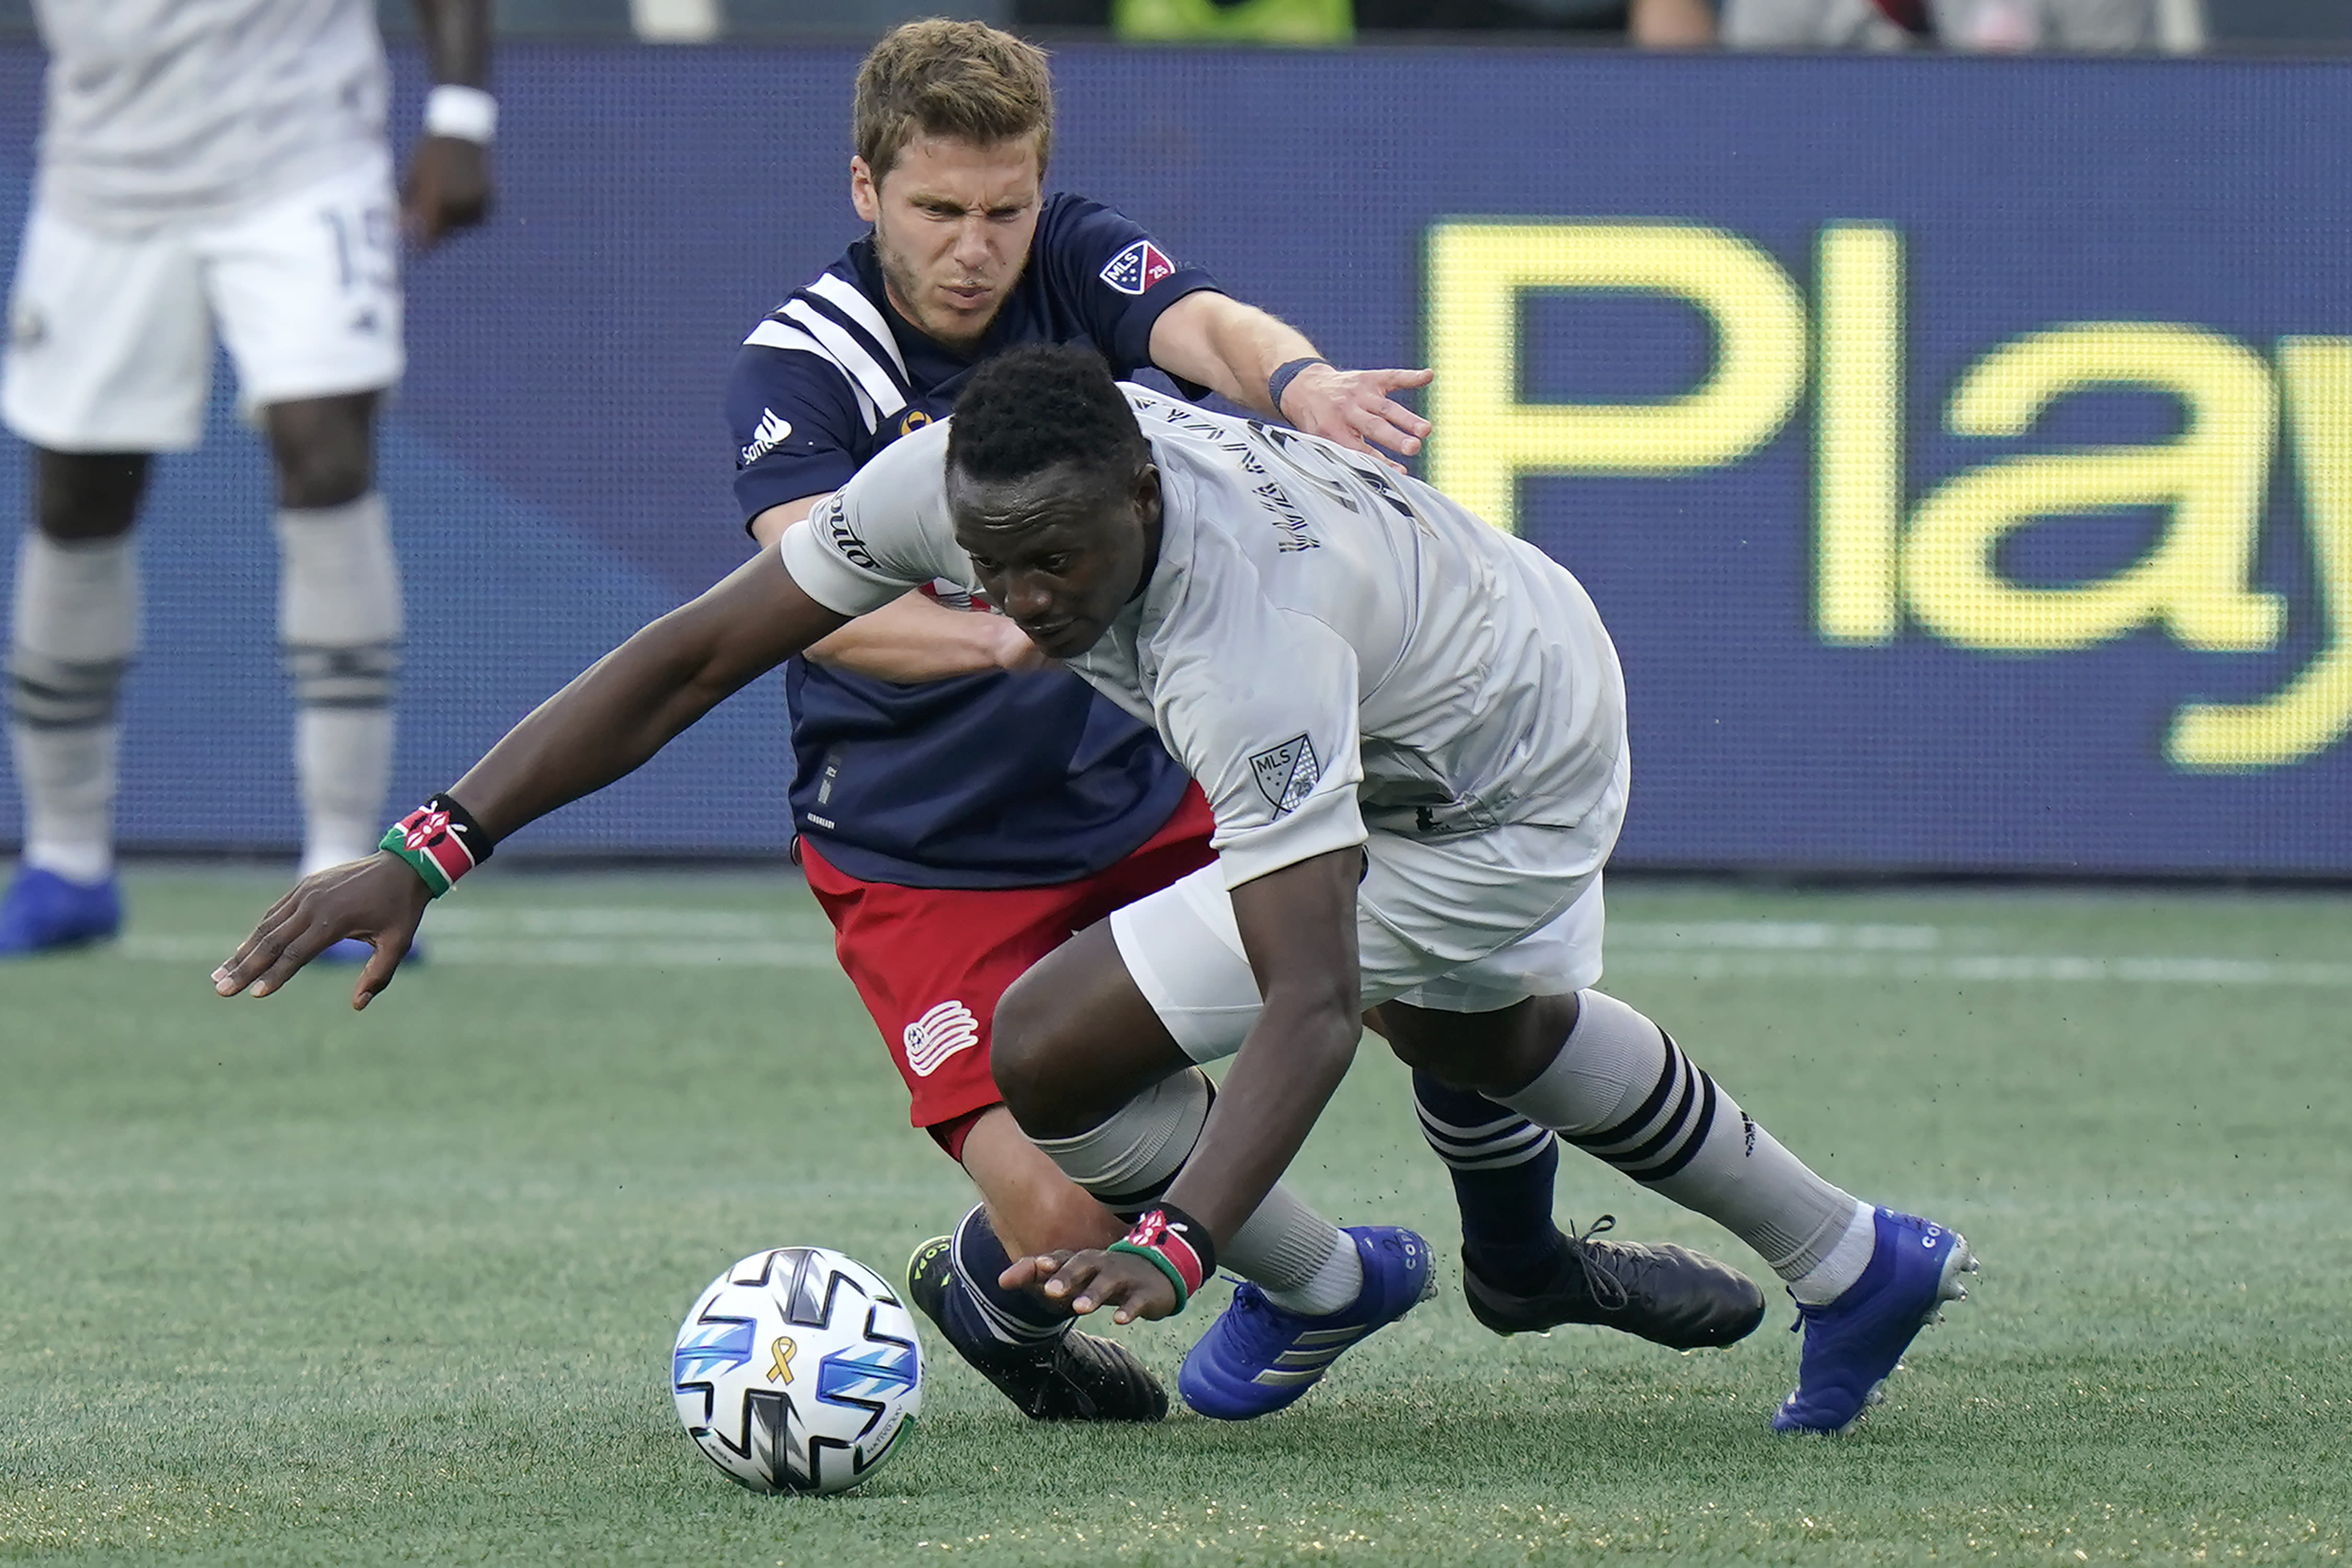 Montreal Impact's Victor Wanyama, right, and New England Revolution's Scott Caldwell, left, vie for control of the ball during the first half of an MLS soccer match, Wednesday, Sept. 23, 2020, in Foxborough, Mass. (AP Photo/Steven Senne)